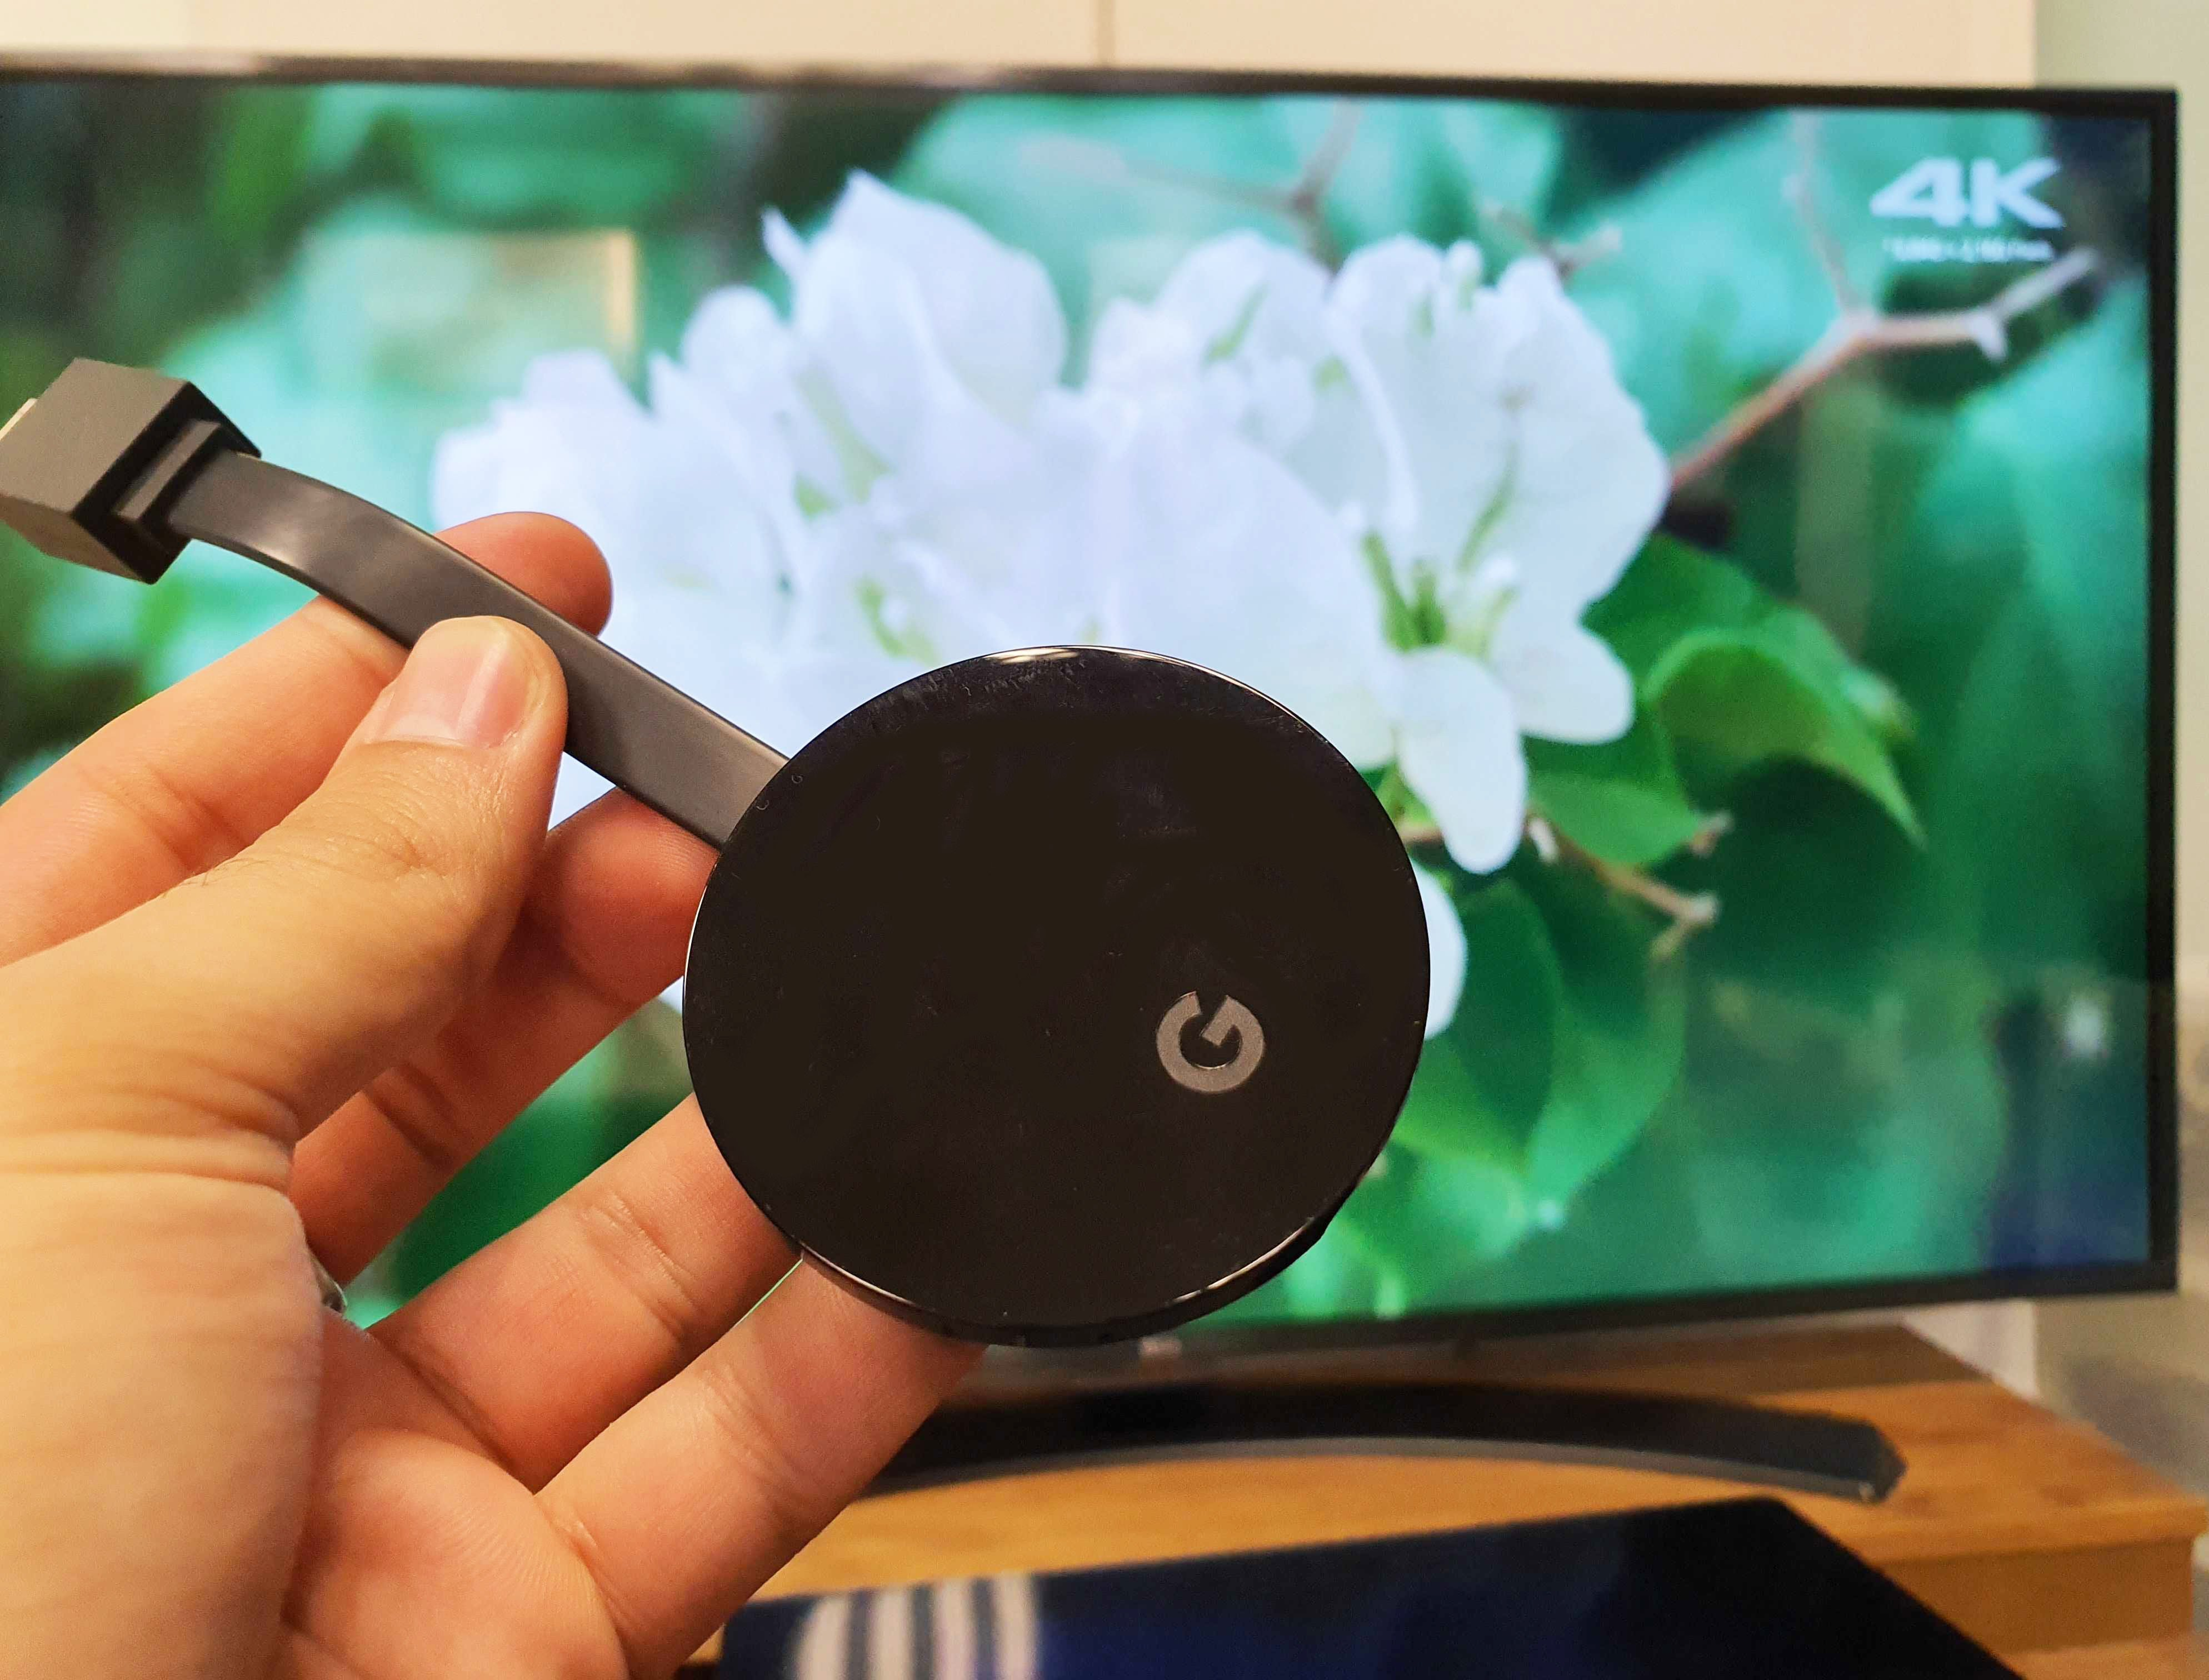 Google Chromecast : les meilleures applications compatibles